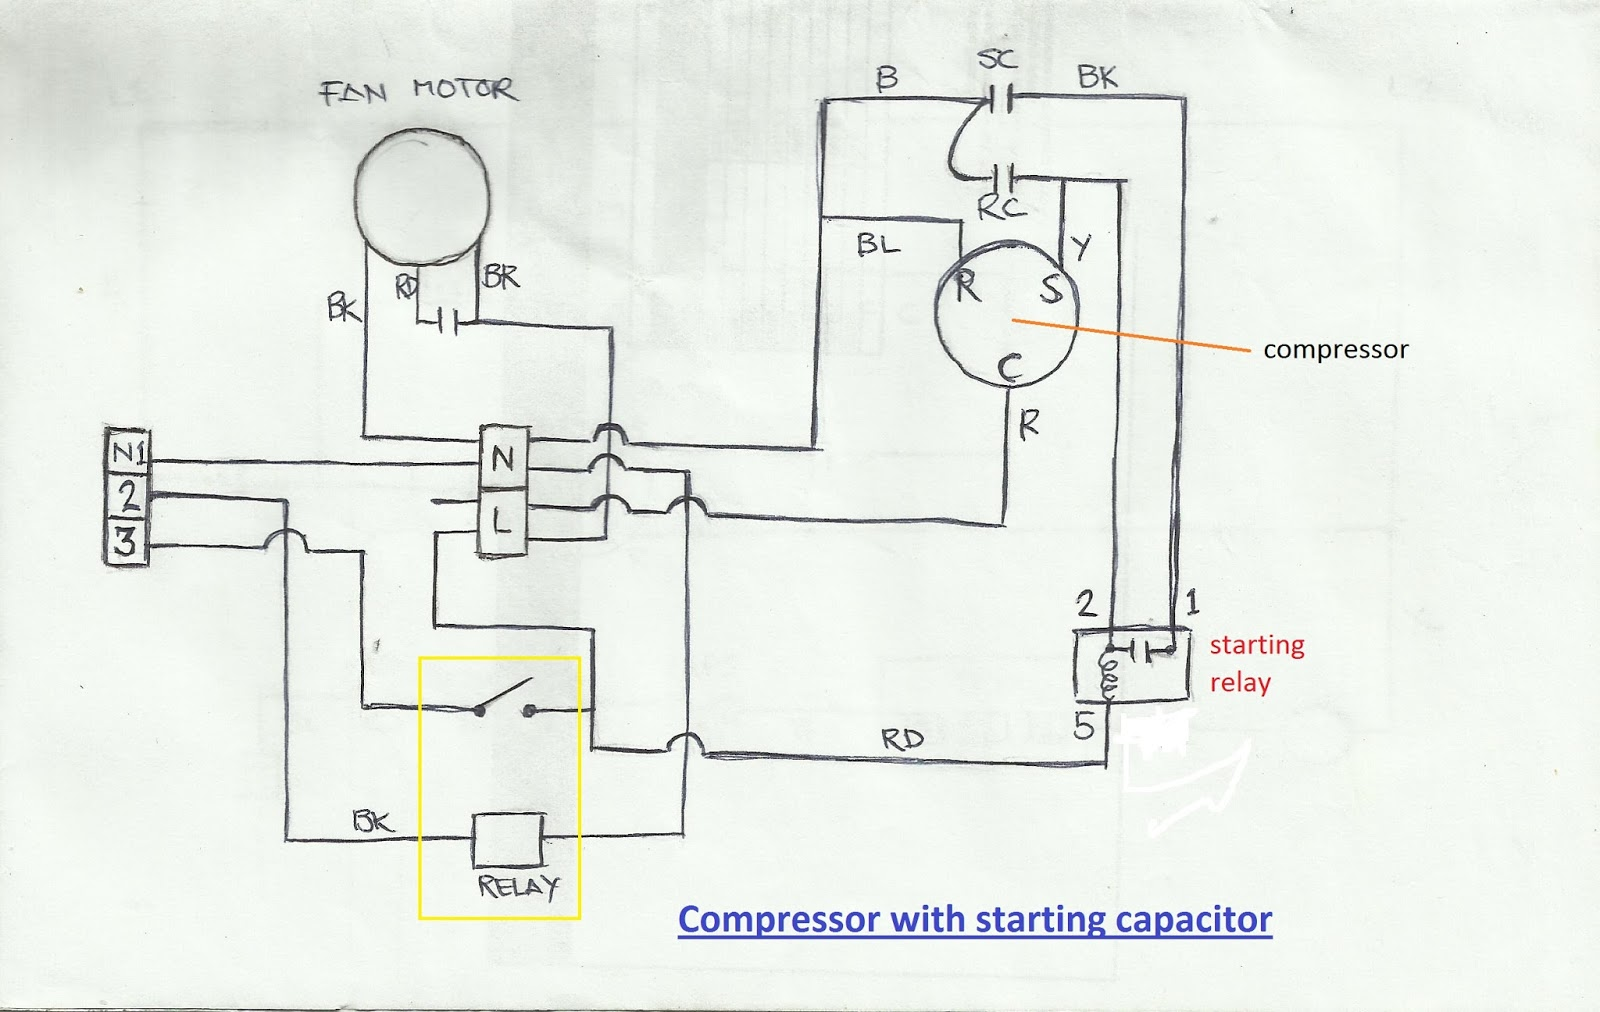 18 refrigeration and air conditioning repair wiring diagram of wiring diagram of no-frost refrigerator at readyjetset.co